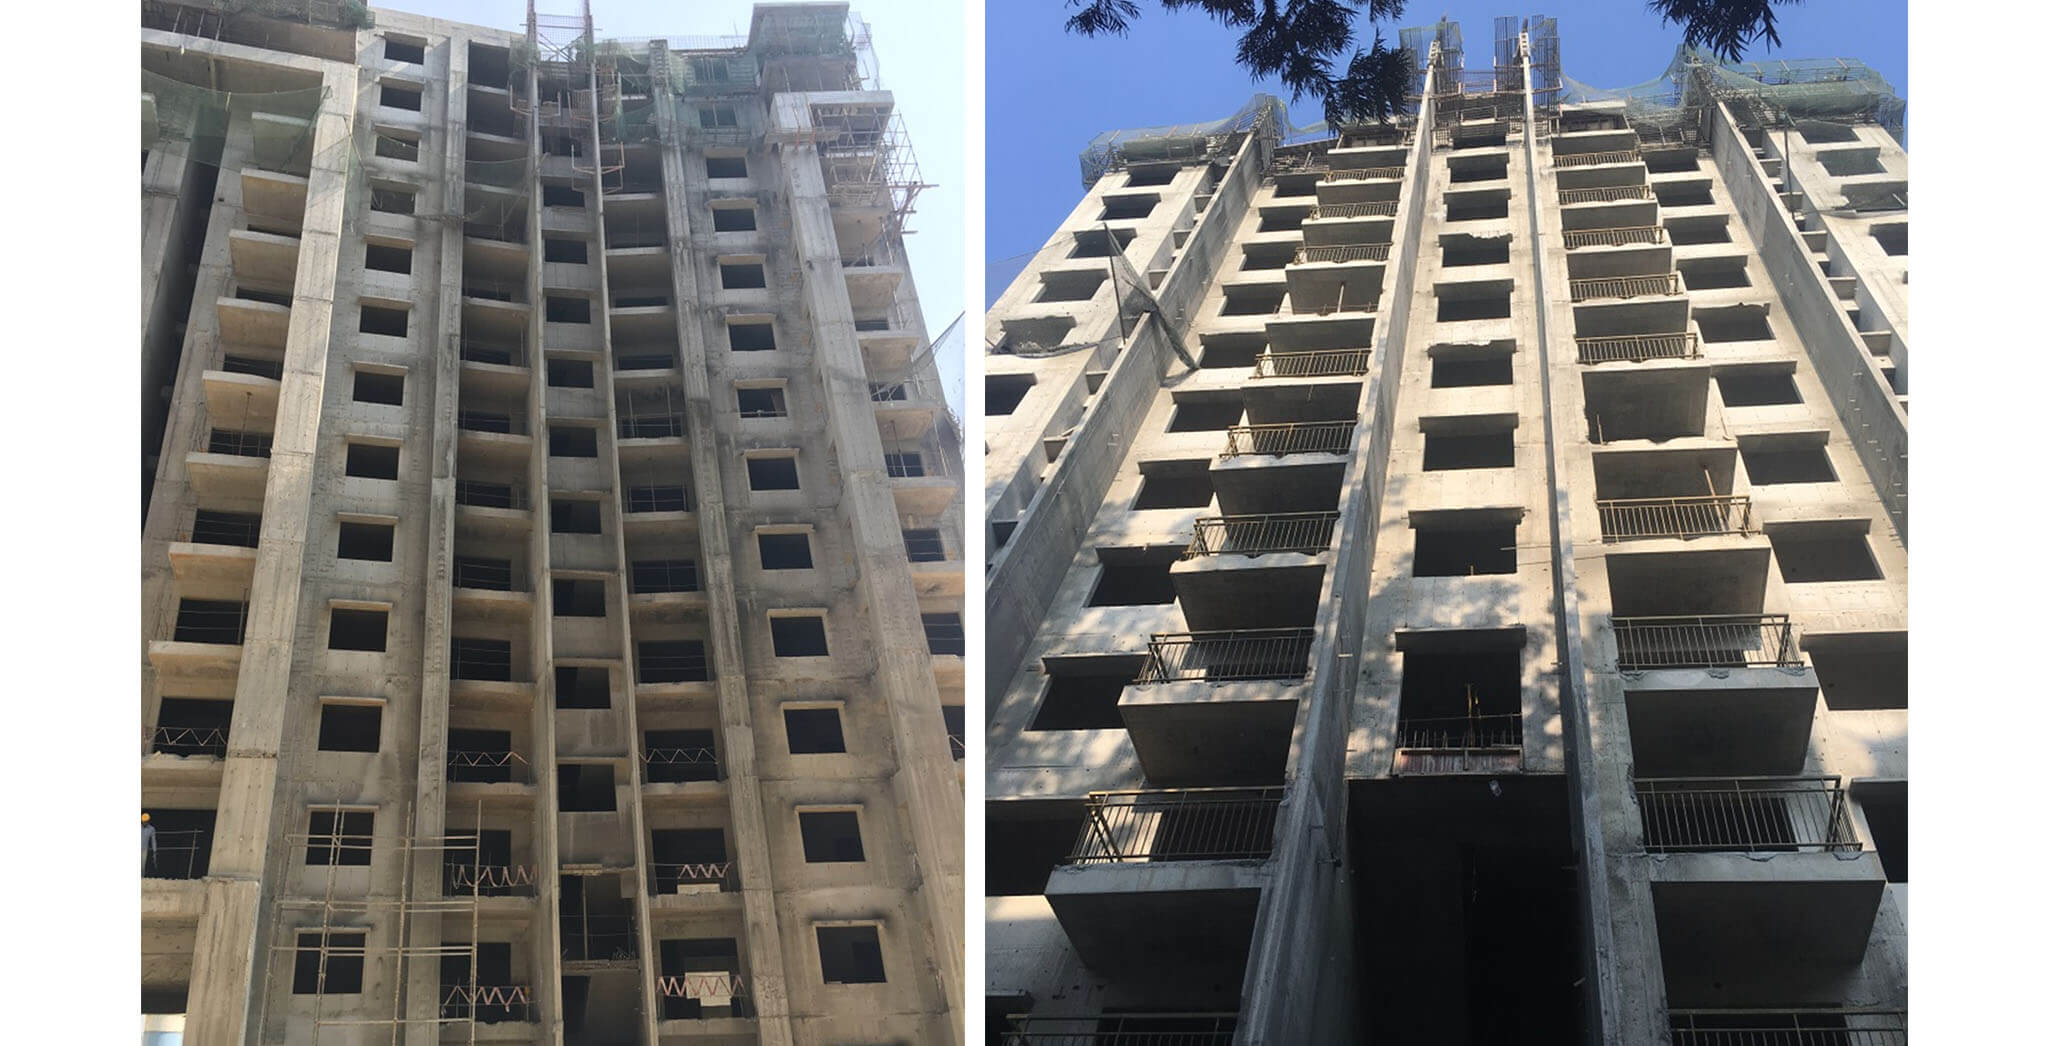 Feb 2018 - Crimson Block, O wing: 2 BHK and 3 BHK—above terrace work-in-progress